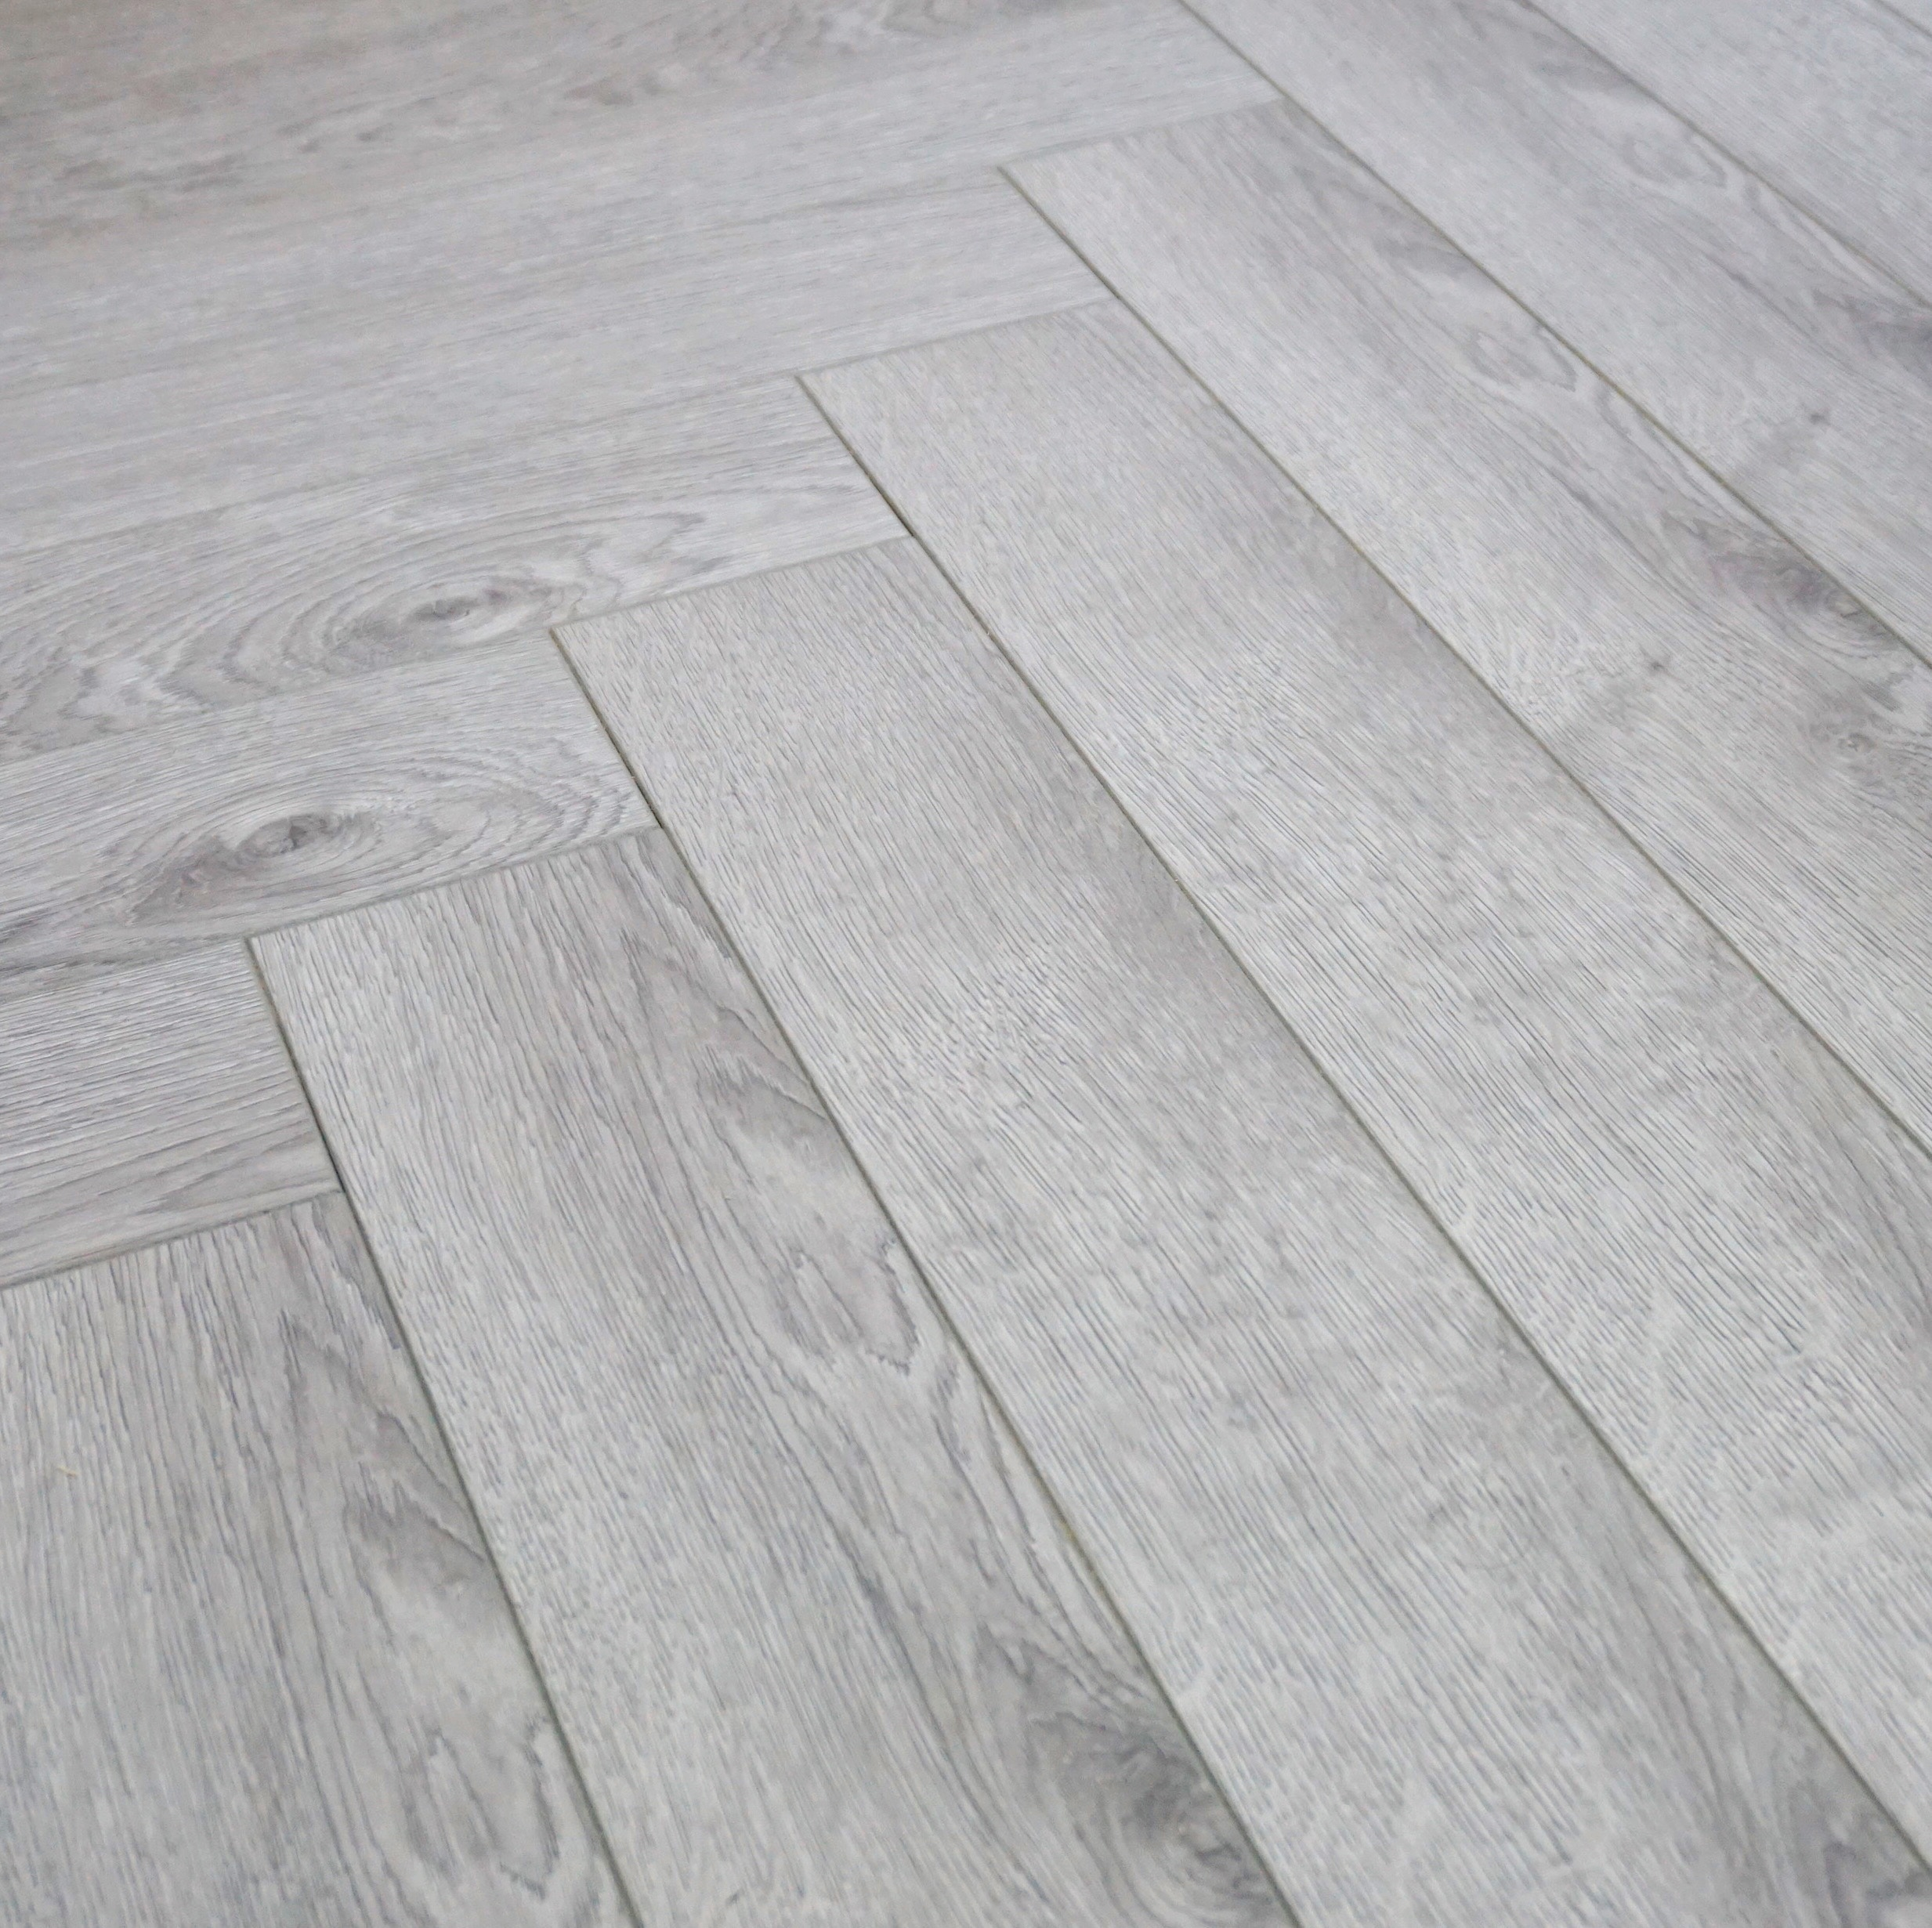 Vivant Vintage Herringbone 12mm Grey Oak 4V Laminate